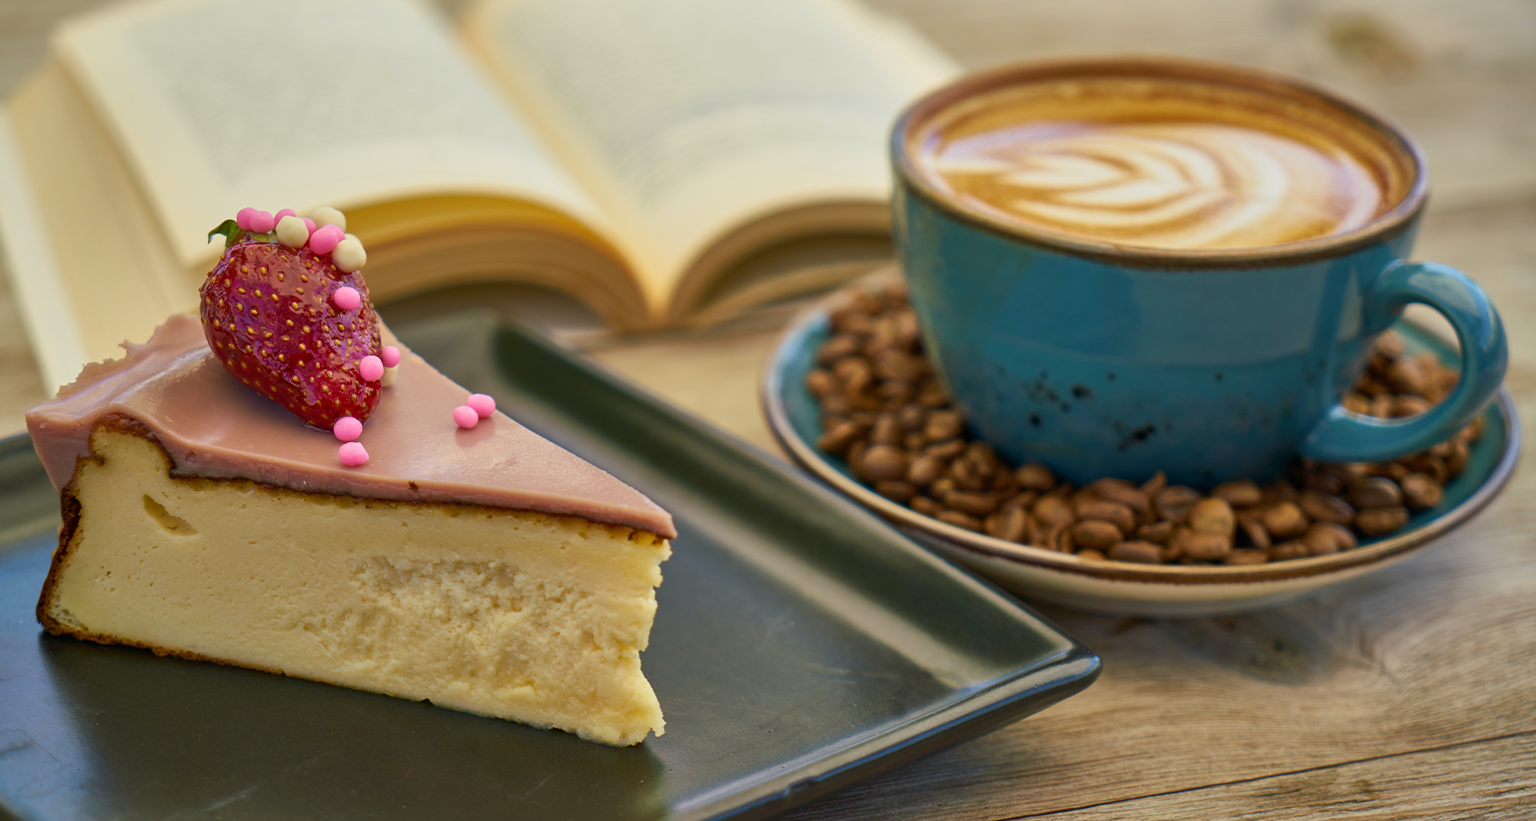 cake and a cup of coffee